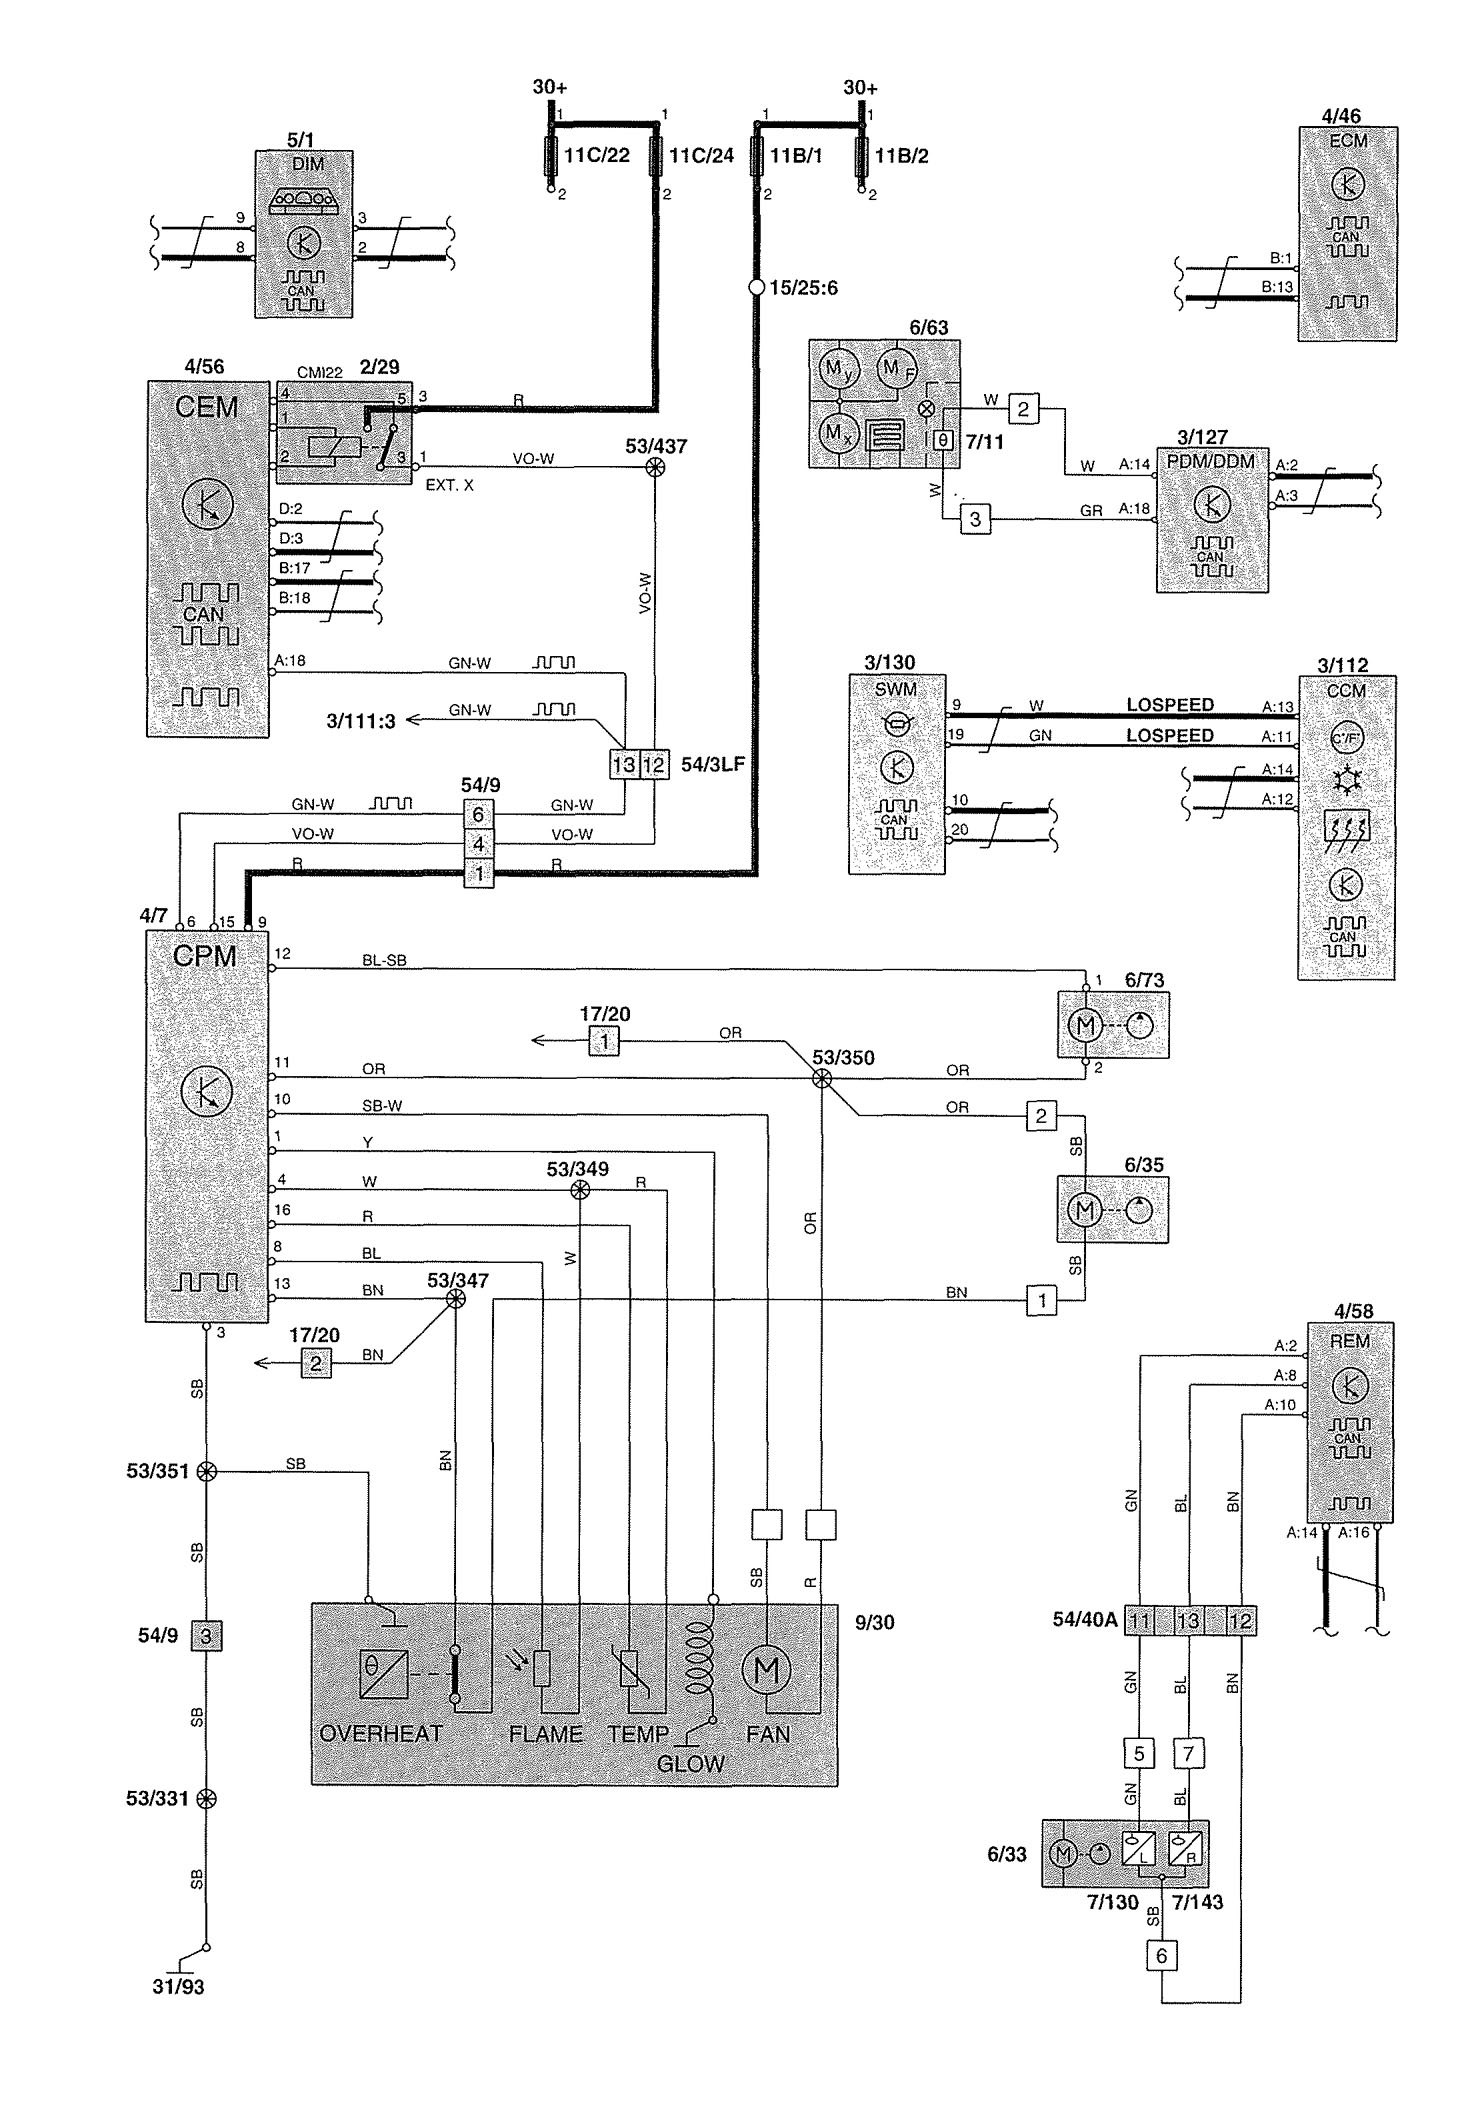 volvo xc90 wiring diagram toyota celica radio 2004 headlight